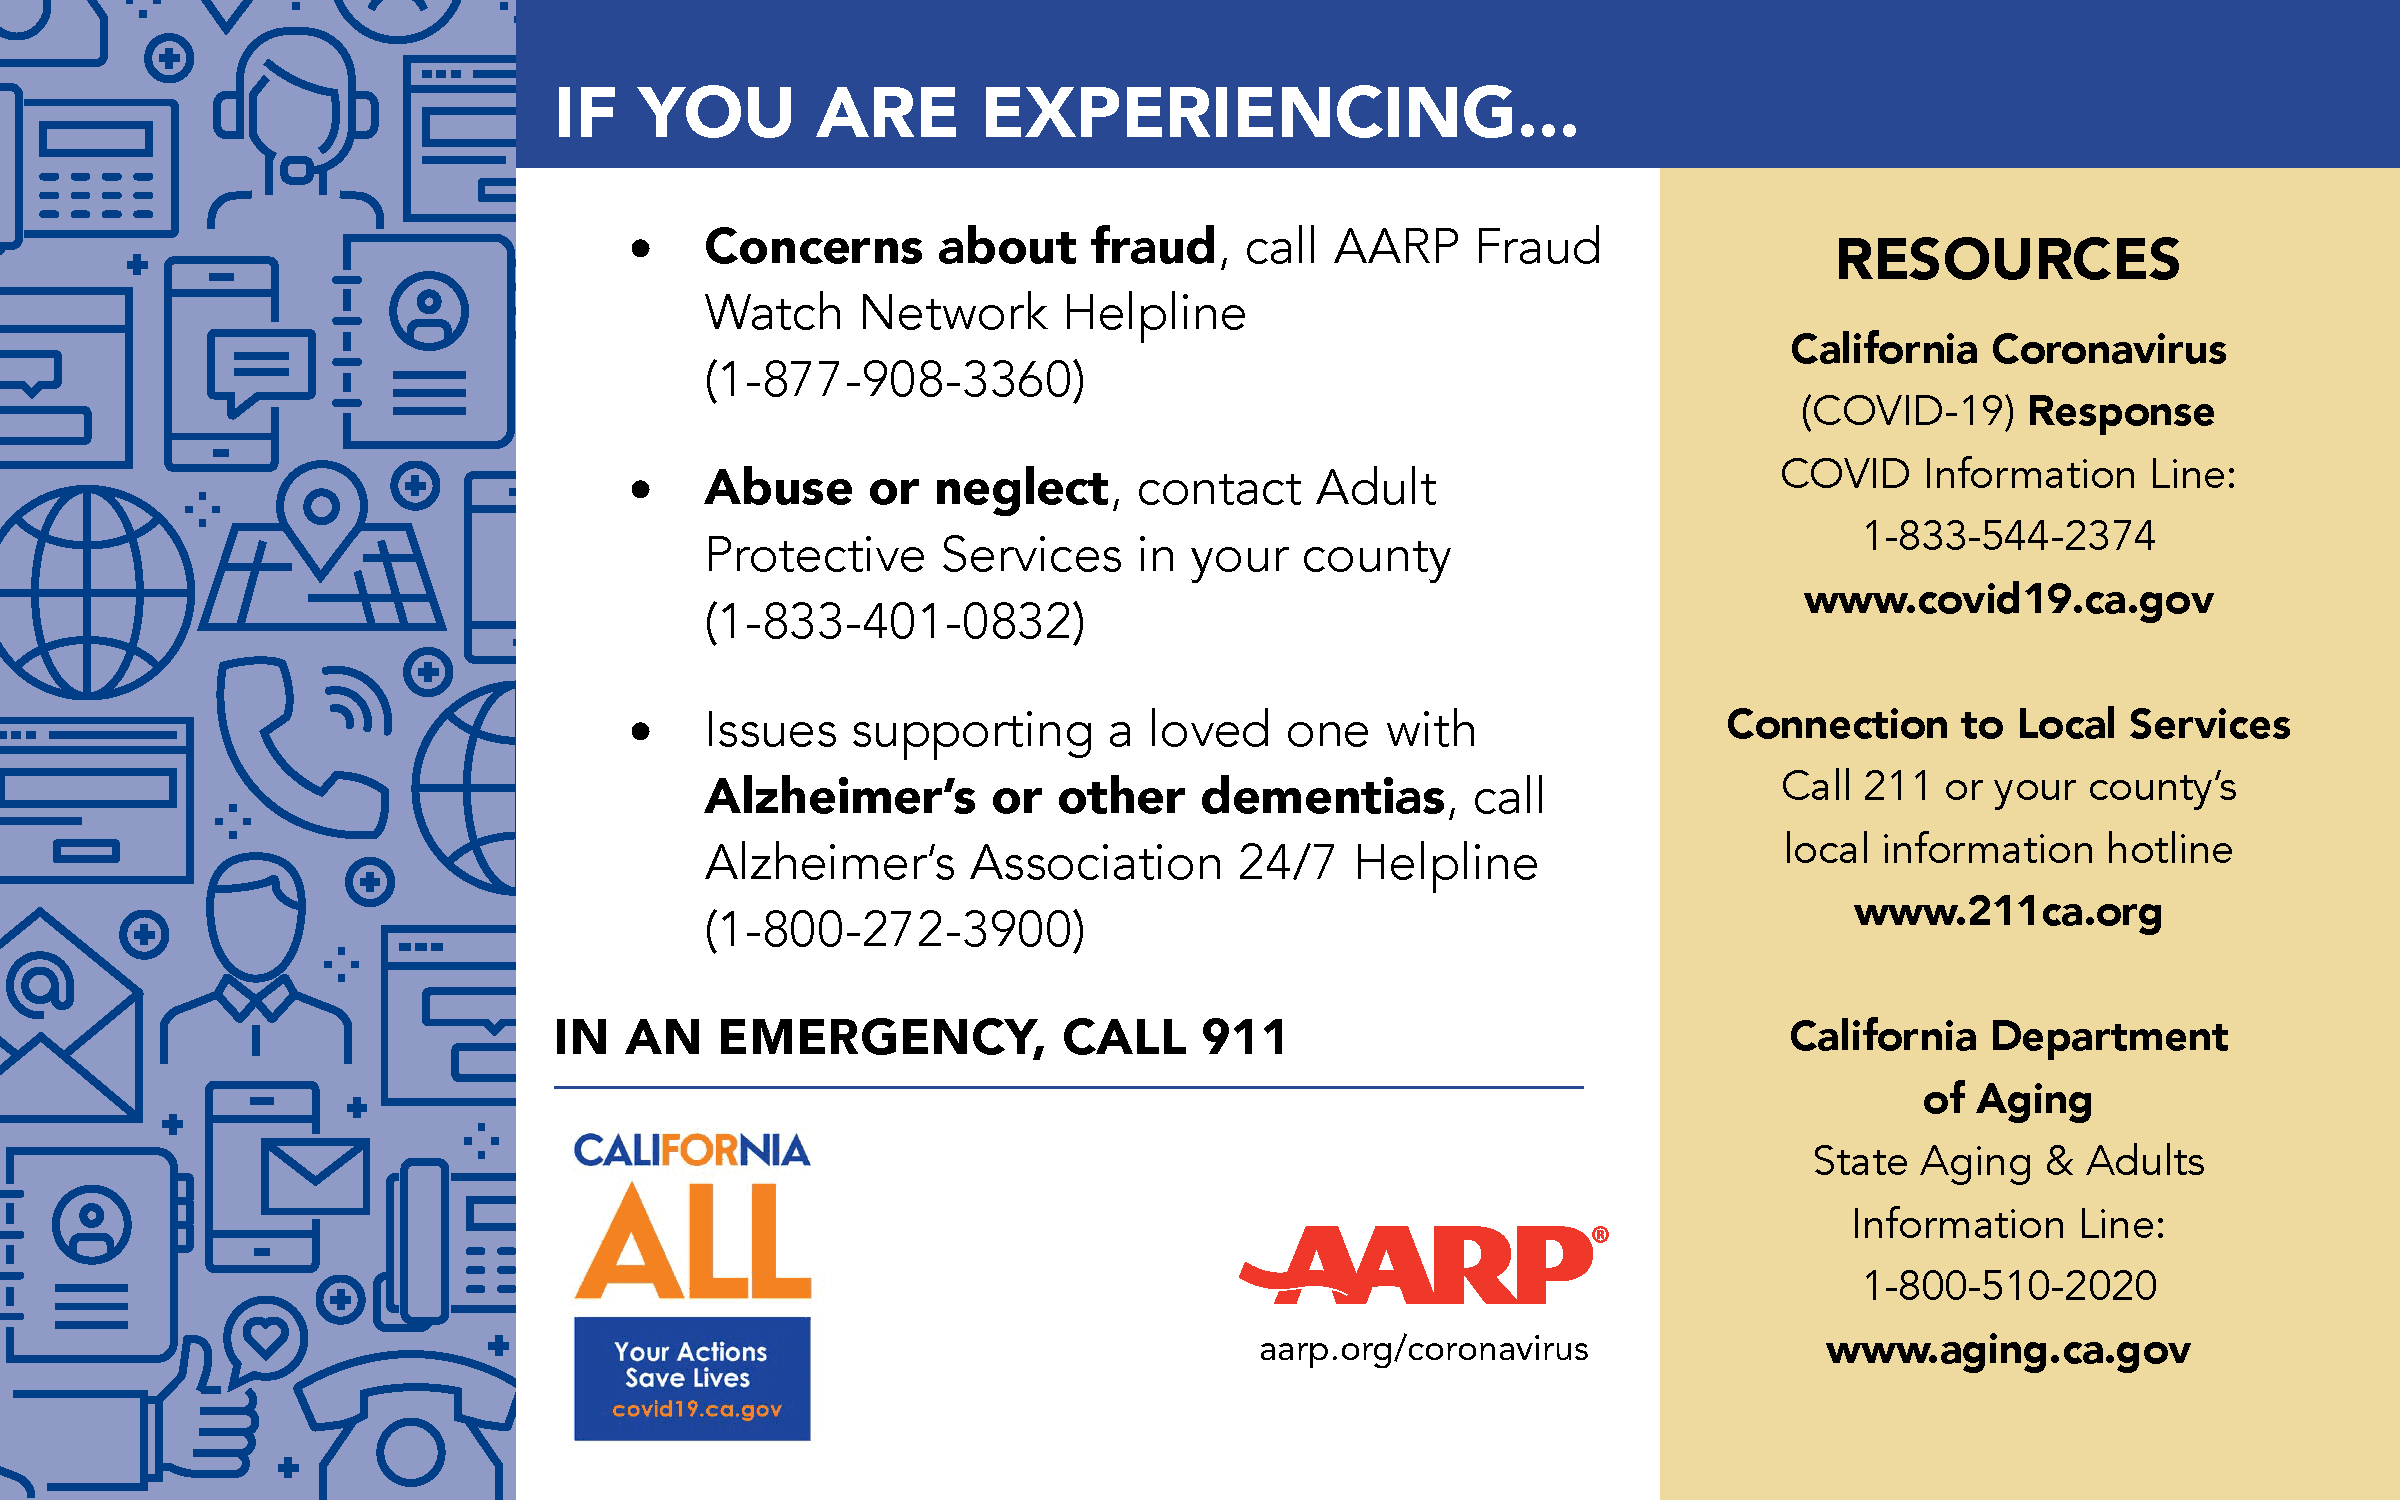 Image displaying older adult referrals from AARP and the State of CA.